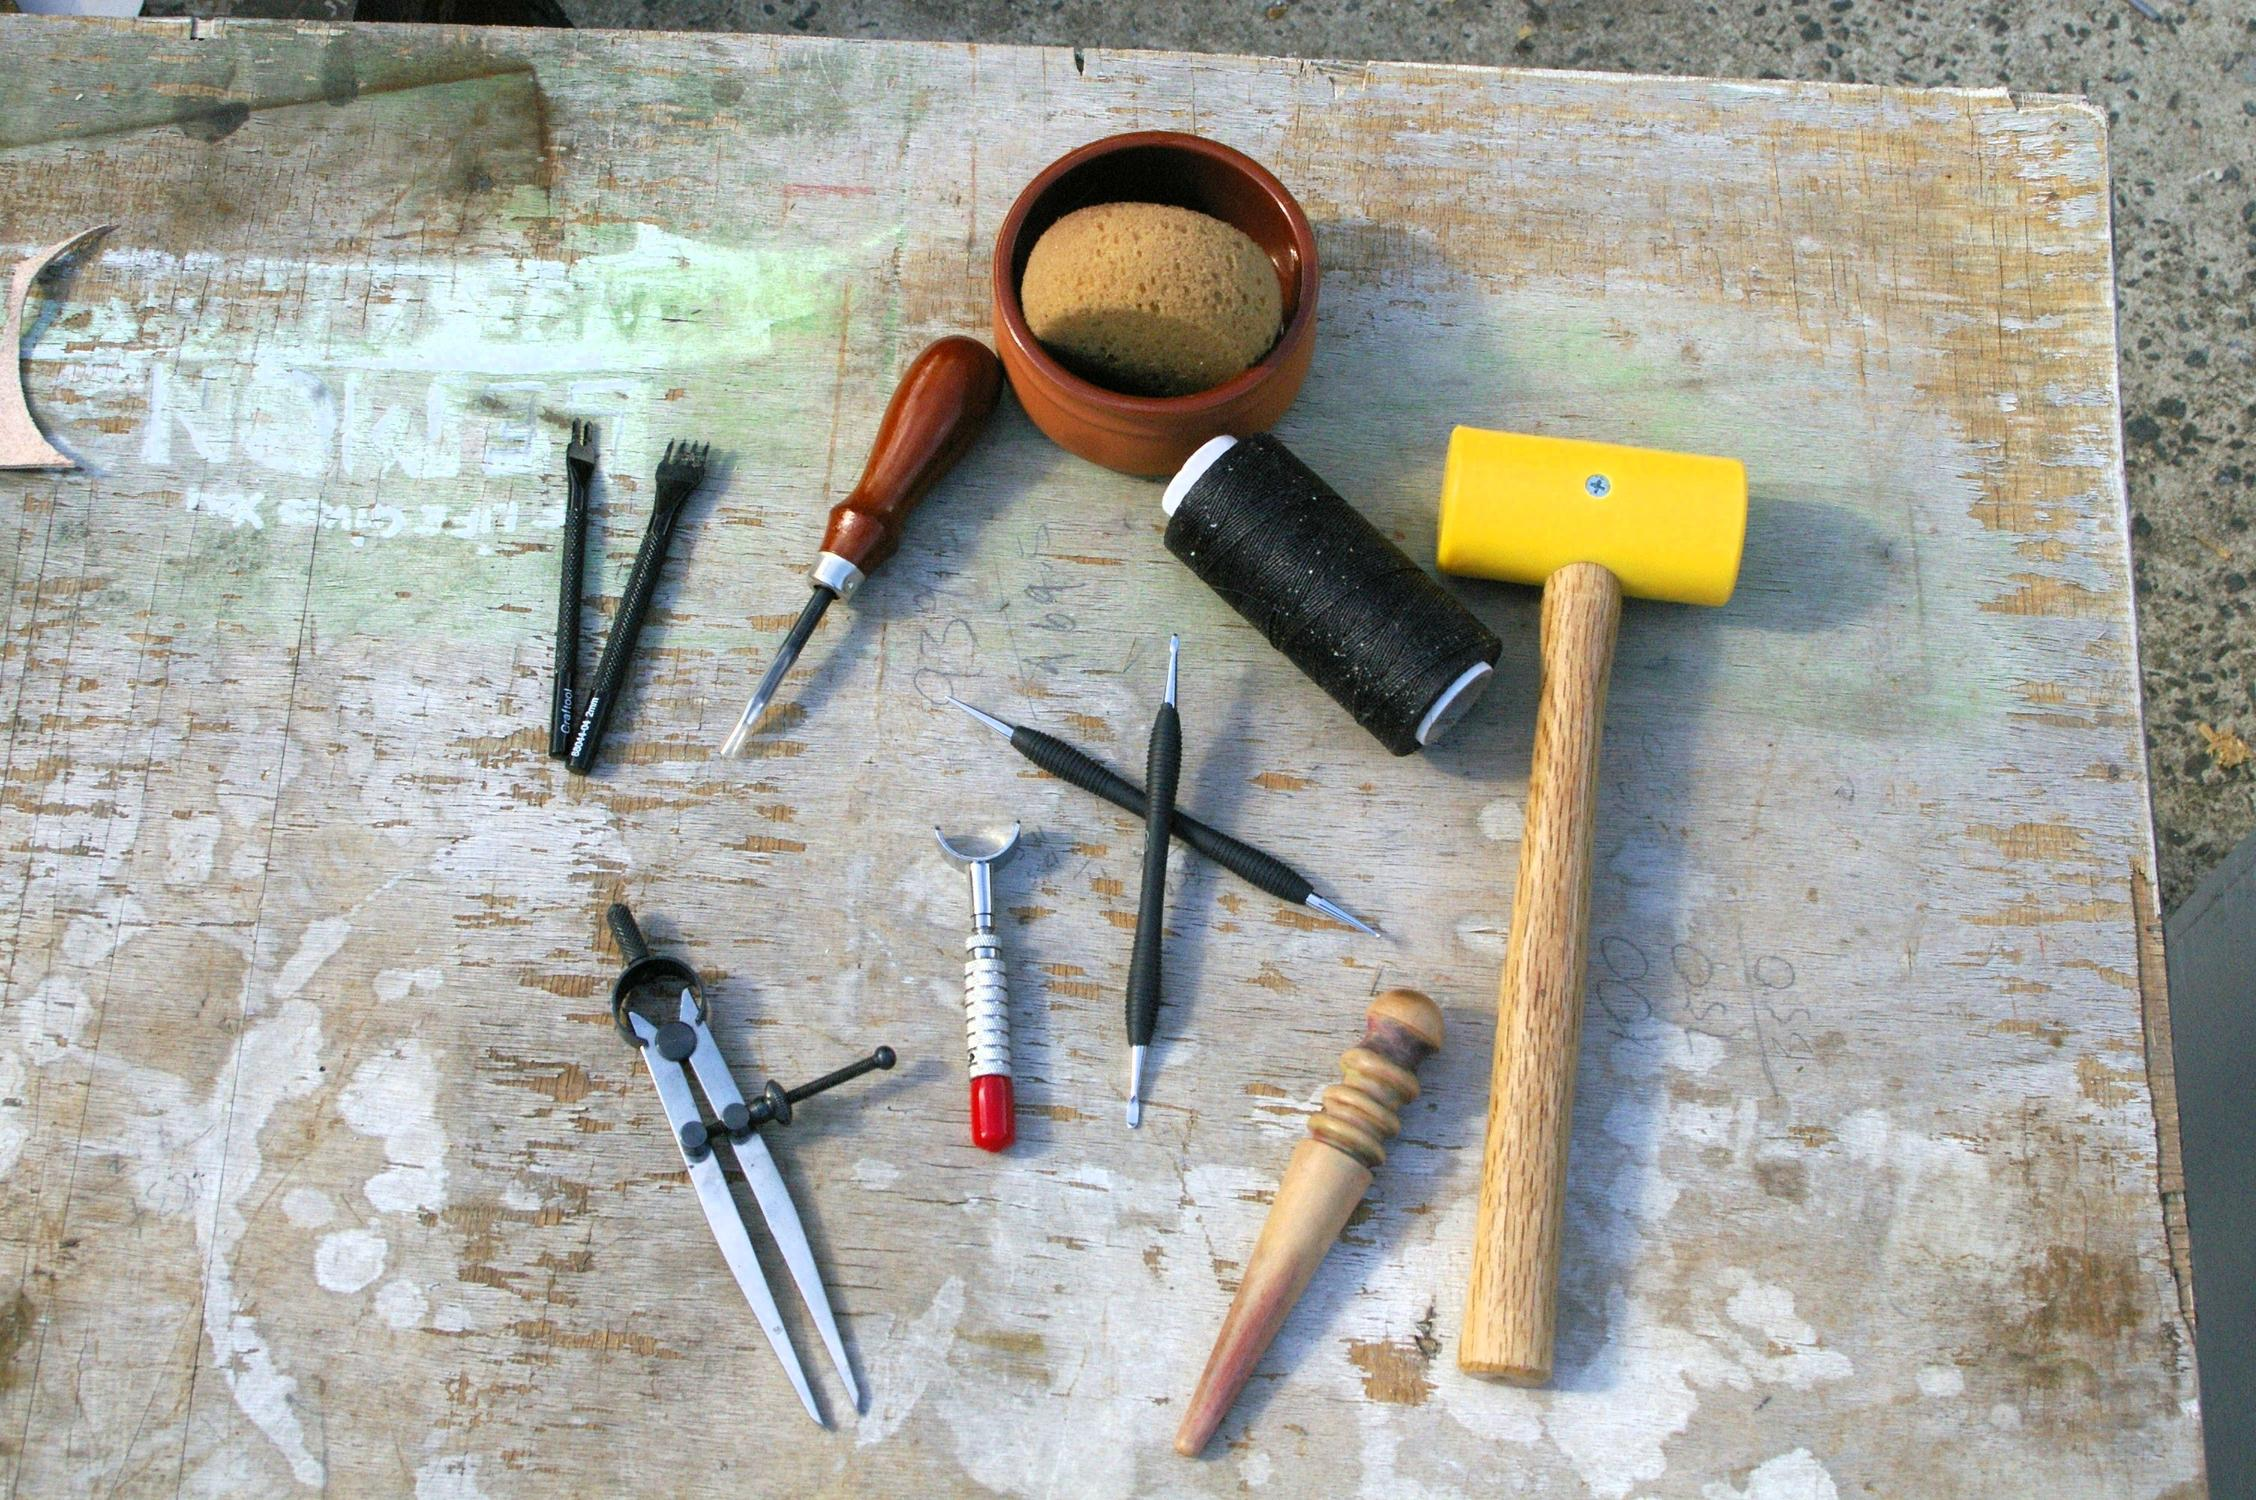 Picture of Homemade or Makeshift Tools to Make a Leather Pendant